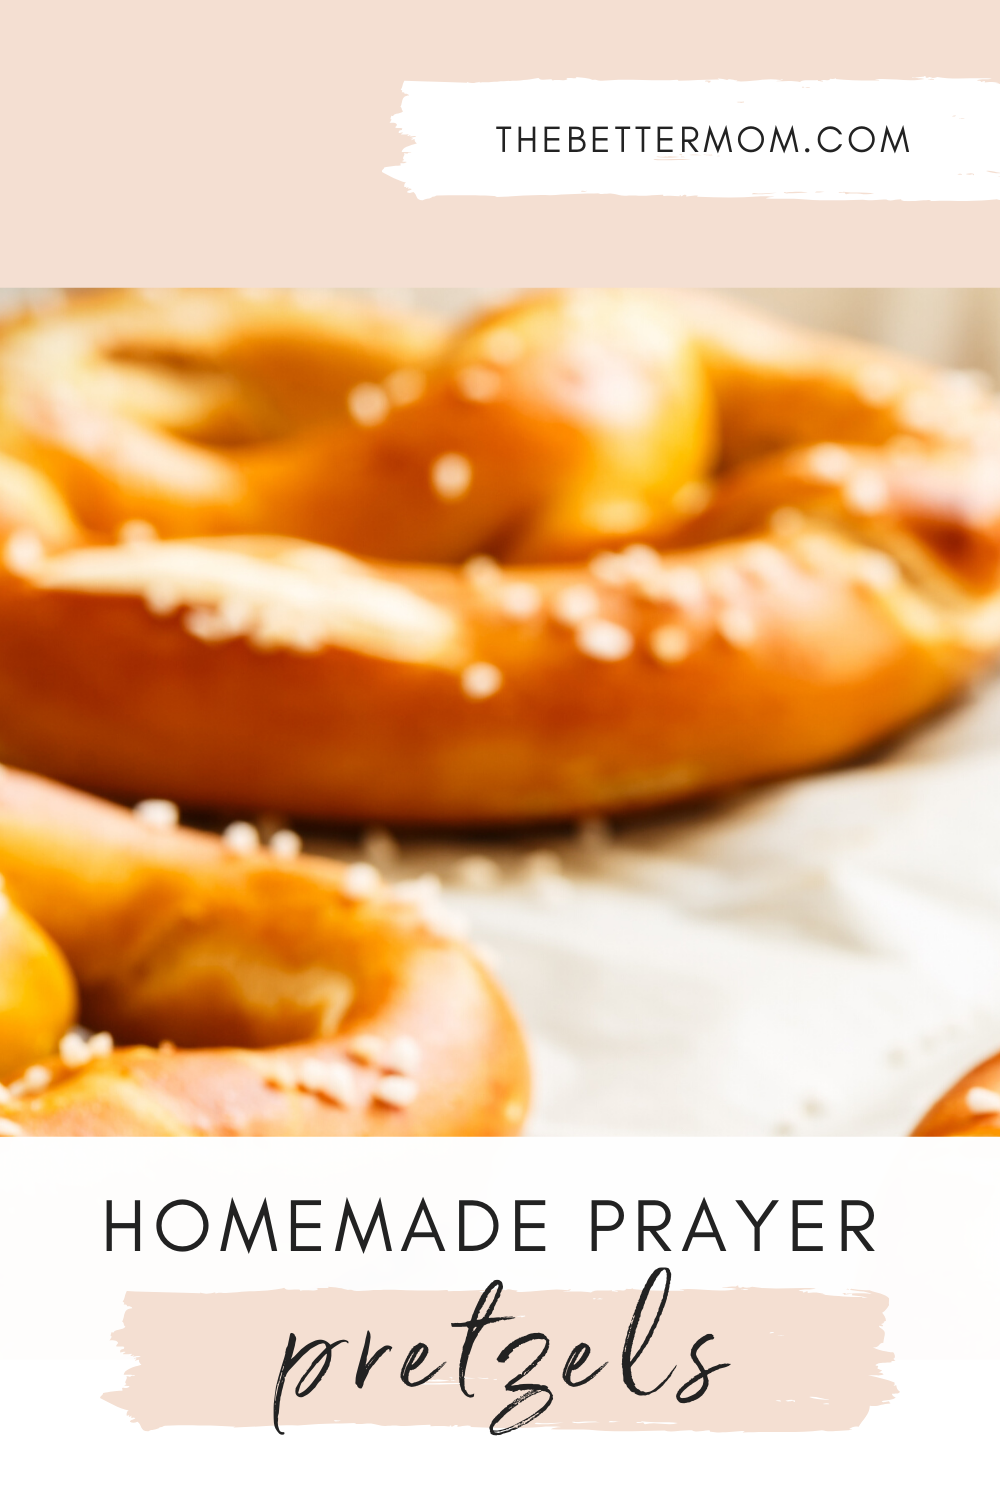 Are you looking for a delightful and impactful way to teach your children to pray? The process of making pretzels was once used to teach kids about prayer during Lent and we want to share that tradition with you today!